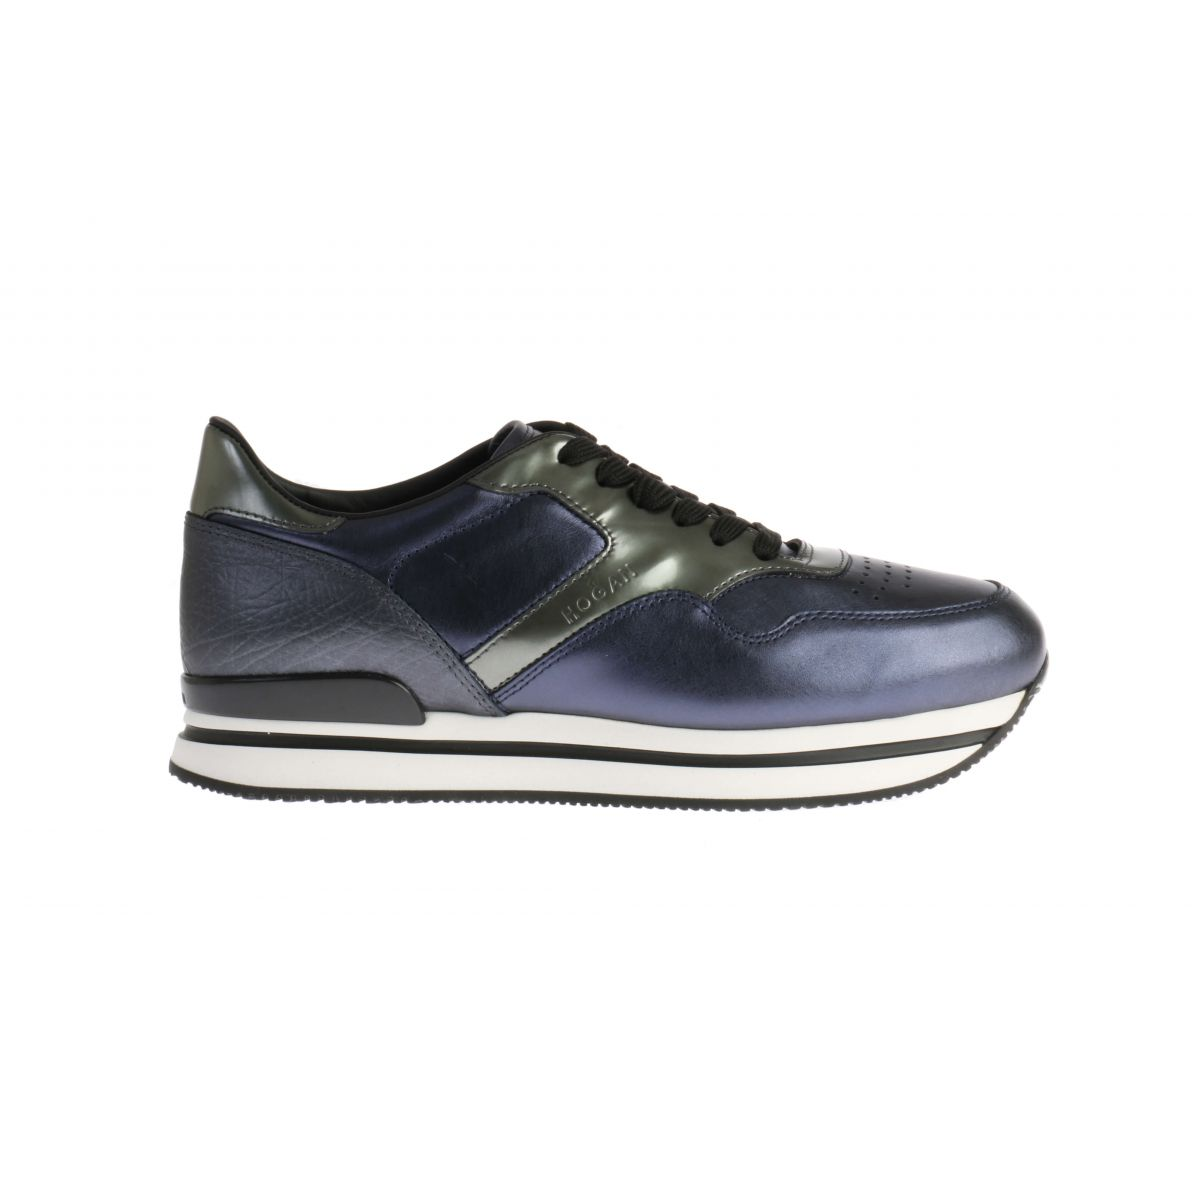 Hogan H222 Sneakers Blauw Metallic